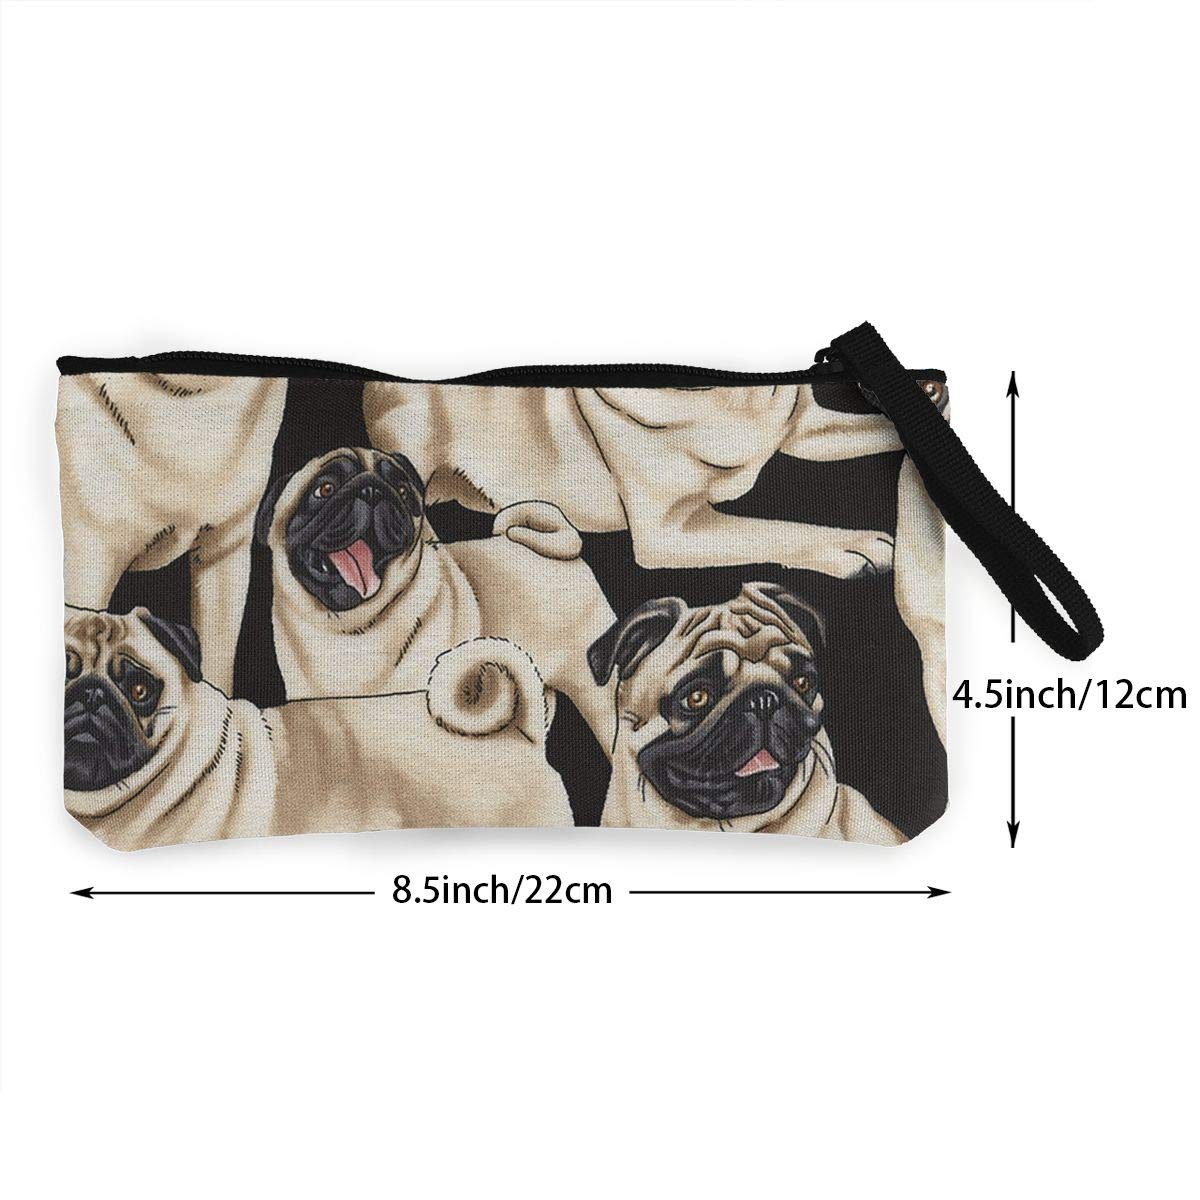 Make Up Bag DH14hjsdDEE Cute Funny Pugs Dog Zipper Canvas Coin Purse Wallet Cellphone Bag With Handle